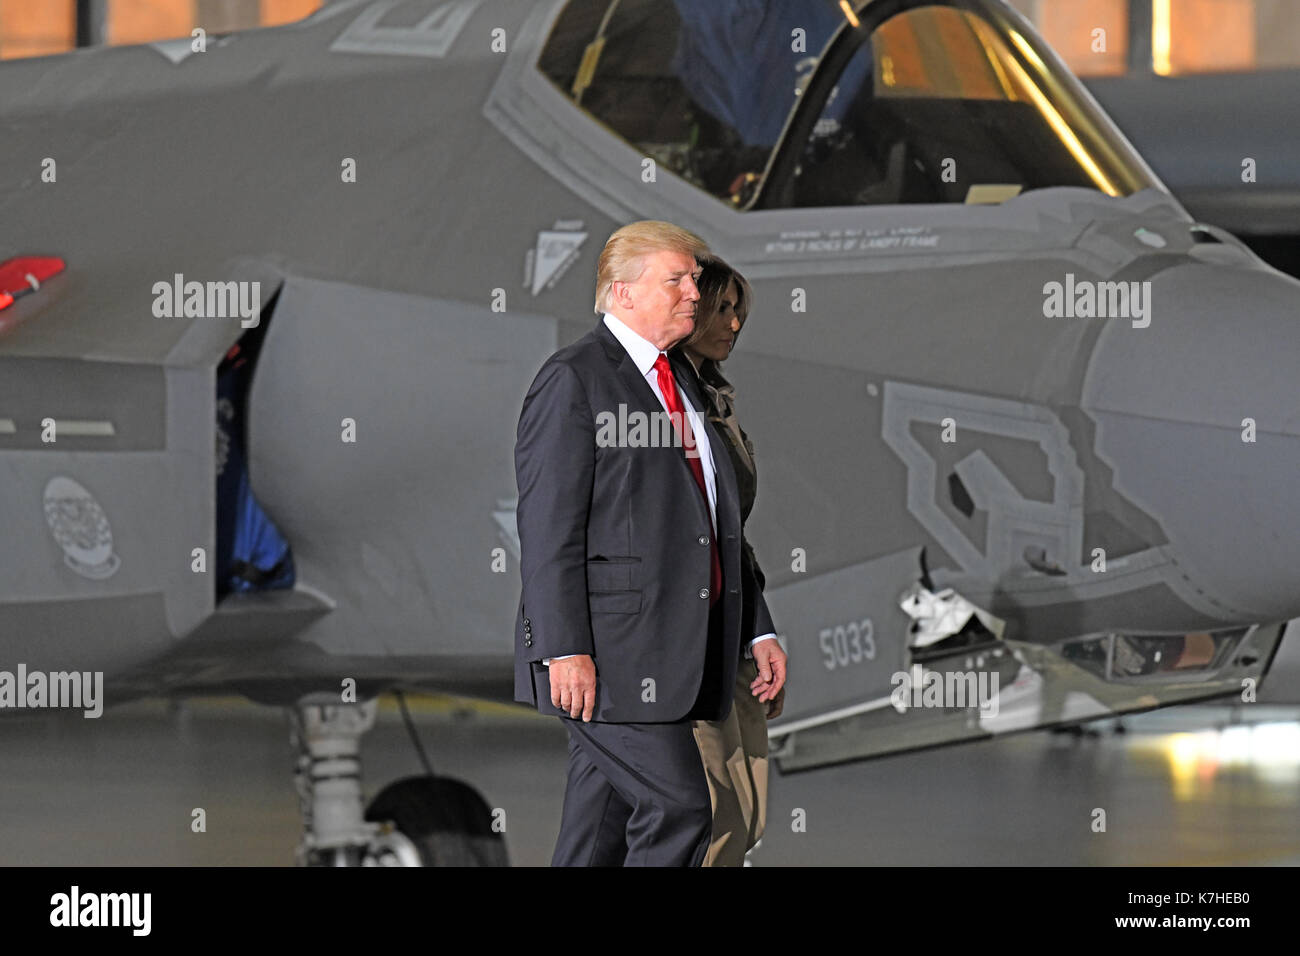 United States President Donald J. Trump and first lady Melania Trump walk in front of an F-35 Joint Strike Fighter as they arrive for the President to deliver remarks to military personnel and families in a hanger at Joint Base Andrews in Maryland on Friday, September 15, 2017. The F-35 is a plane the President has criticized in the past. He visited JBA to commemorate the 70th anniversary of the US Air Force. Credit: Ron Sachs/CNP - Stock Image